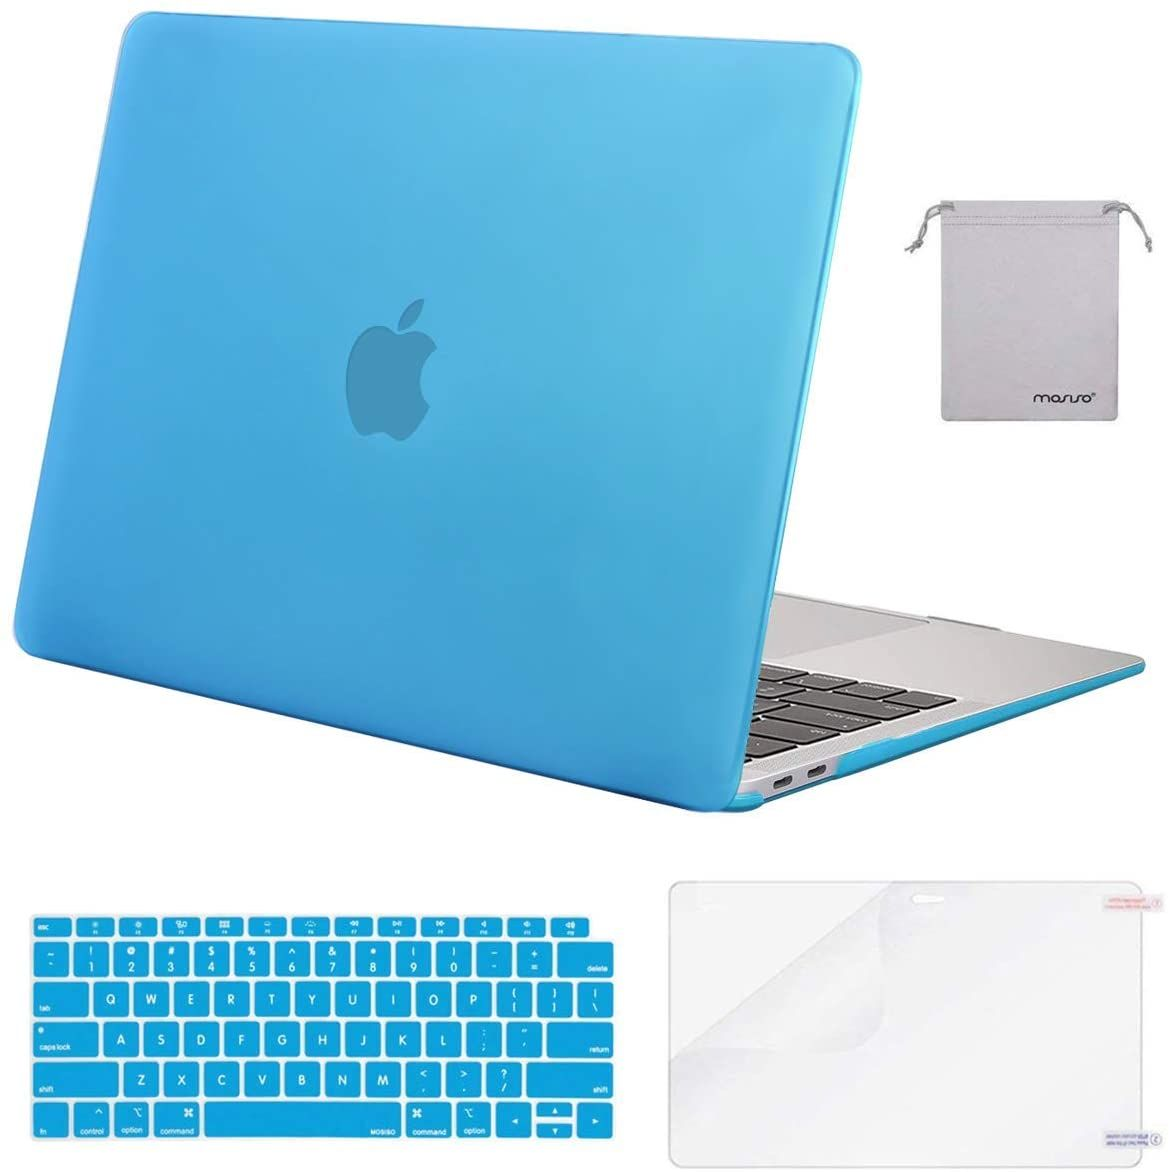 Mosiso Macbook Air 13 Inch Case 2020 2019 2018 Release A2179 A1932 With Retina Display Plastic Hard In 2020 Macbook Air Case 13 Inch Retina Display Macbook Air 13